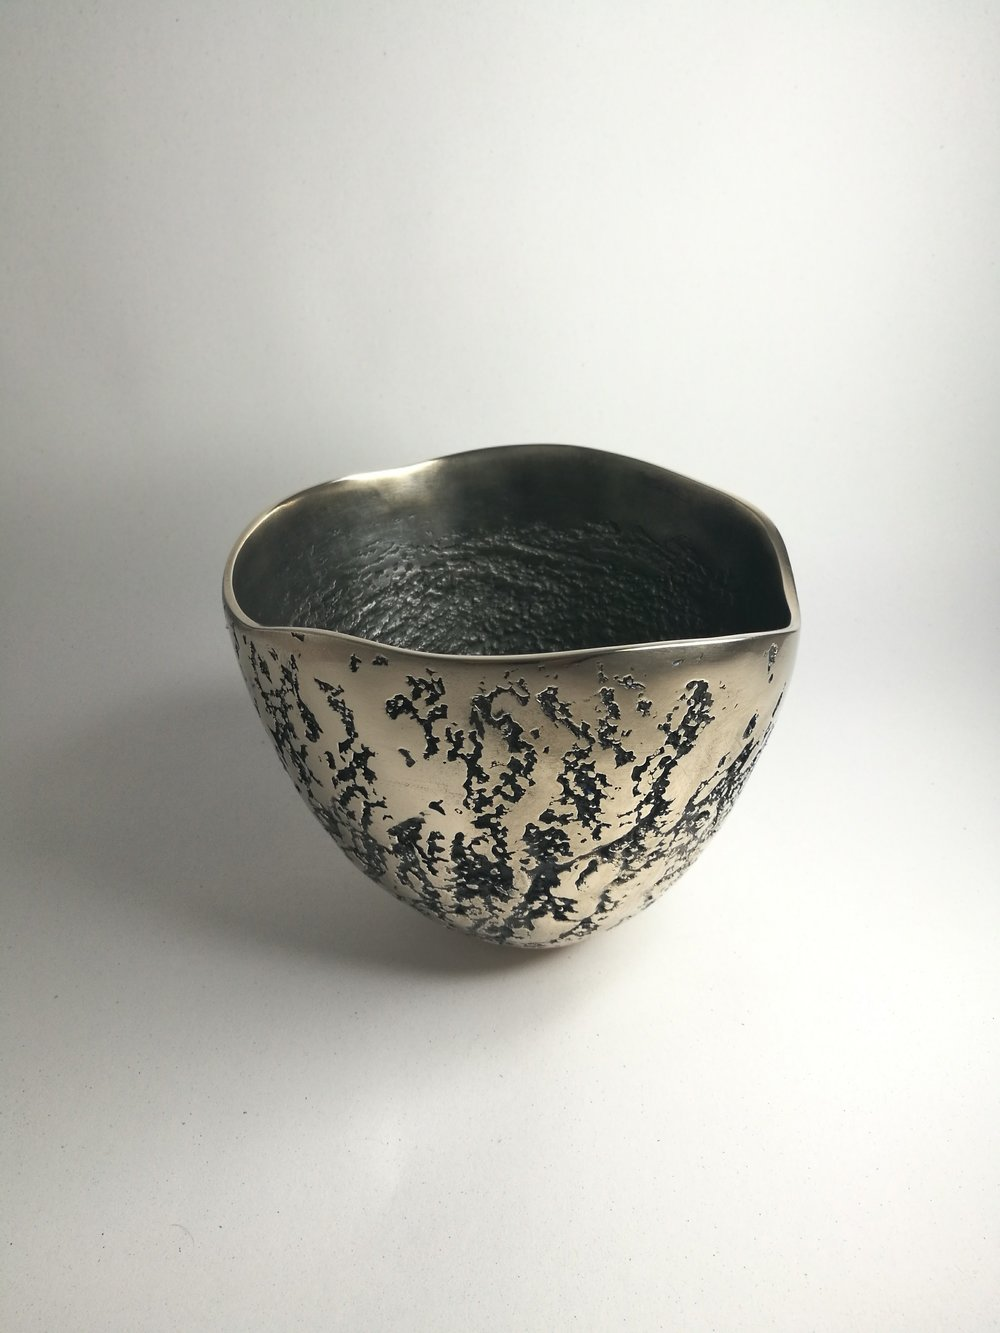 Open Bowl Form - £400.00